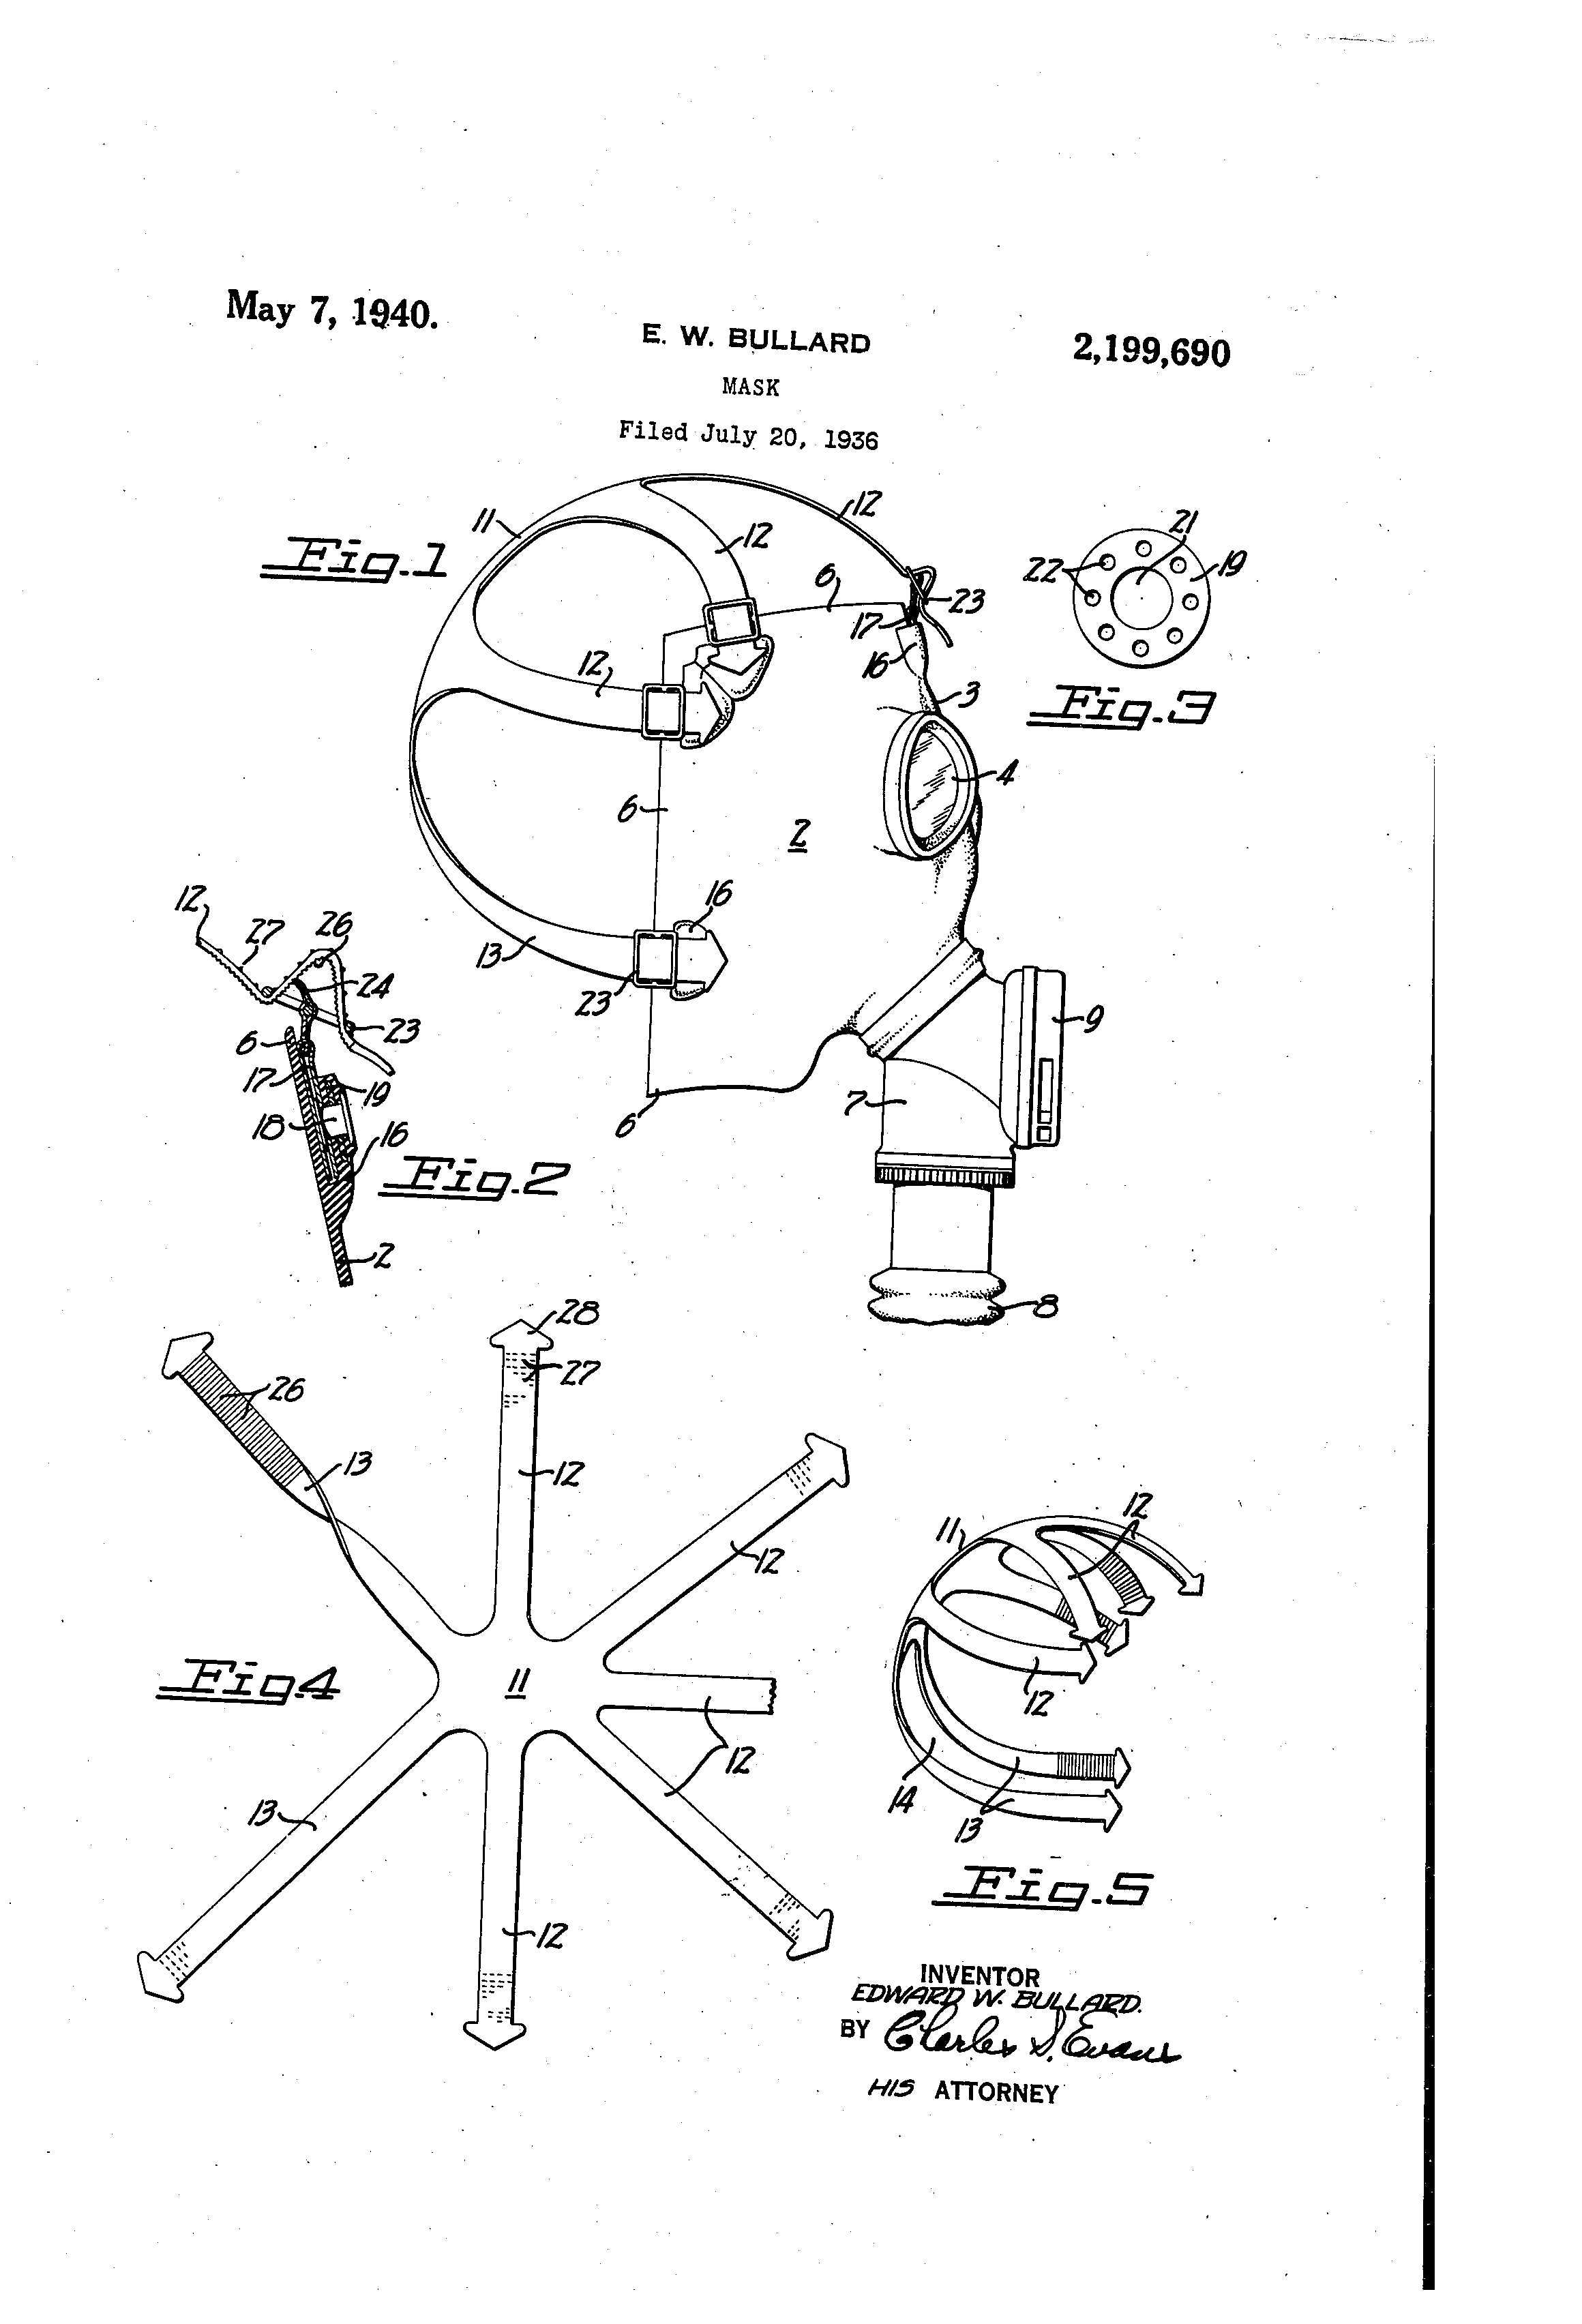 May 7, 1940 Patent